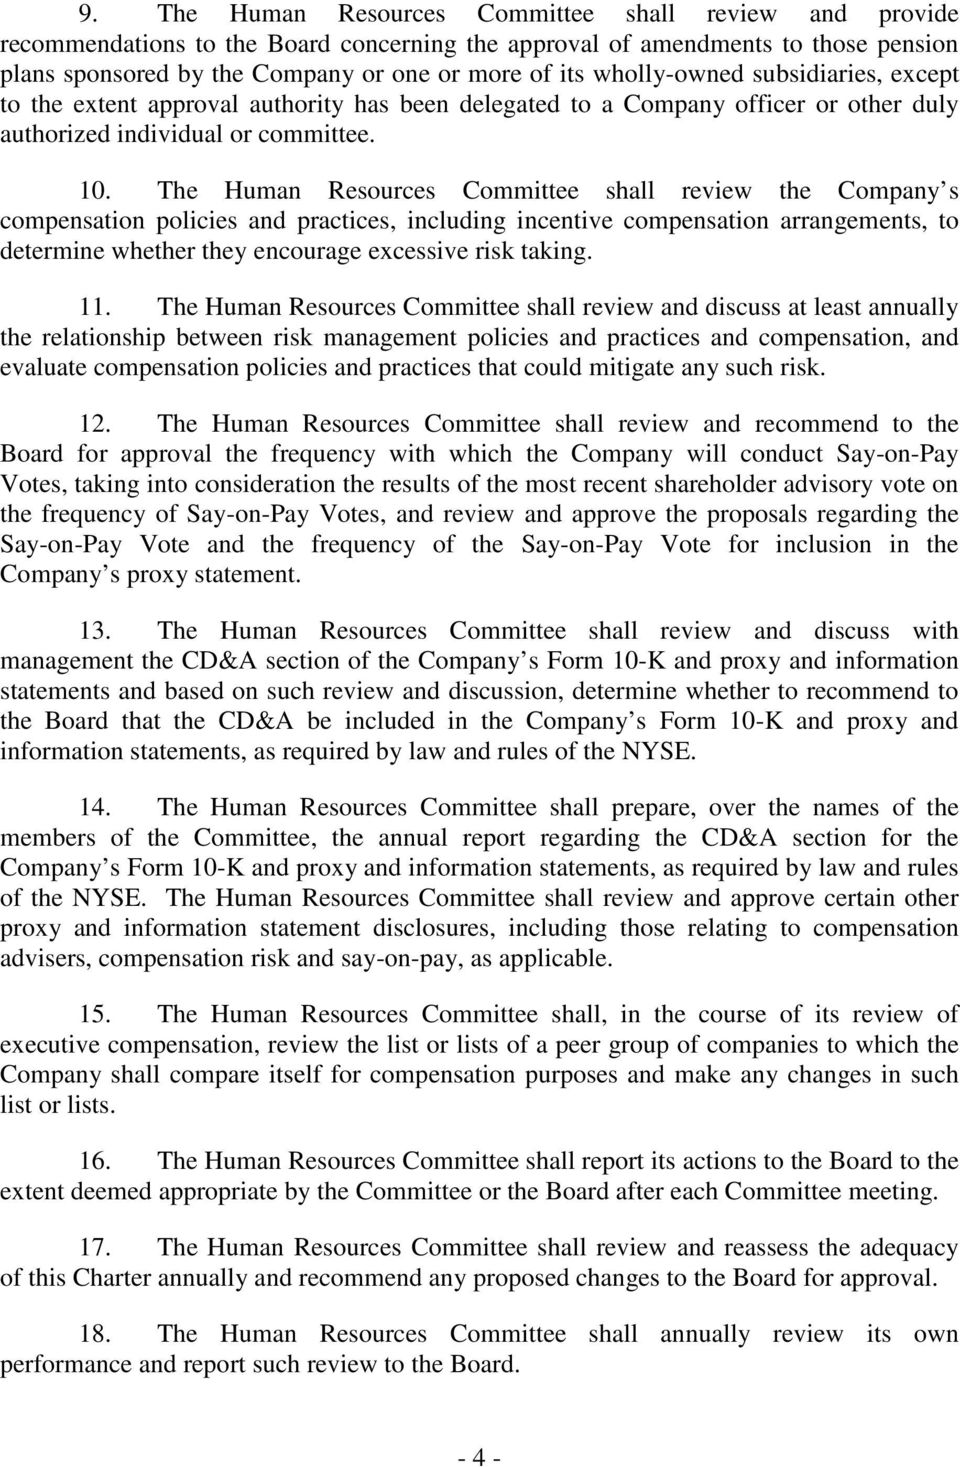 The Human Resources Committee shall review the Company s compensation policies and practices, including incentive compensation arrangements, to determine whether they encourage excessive risk taking.